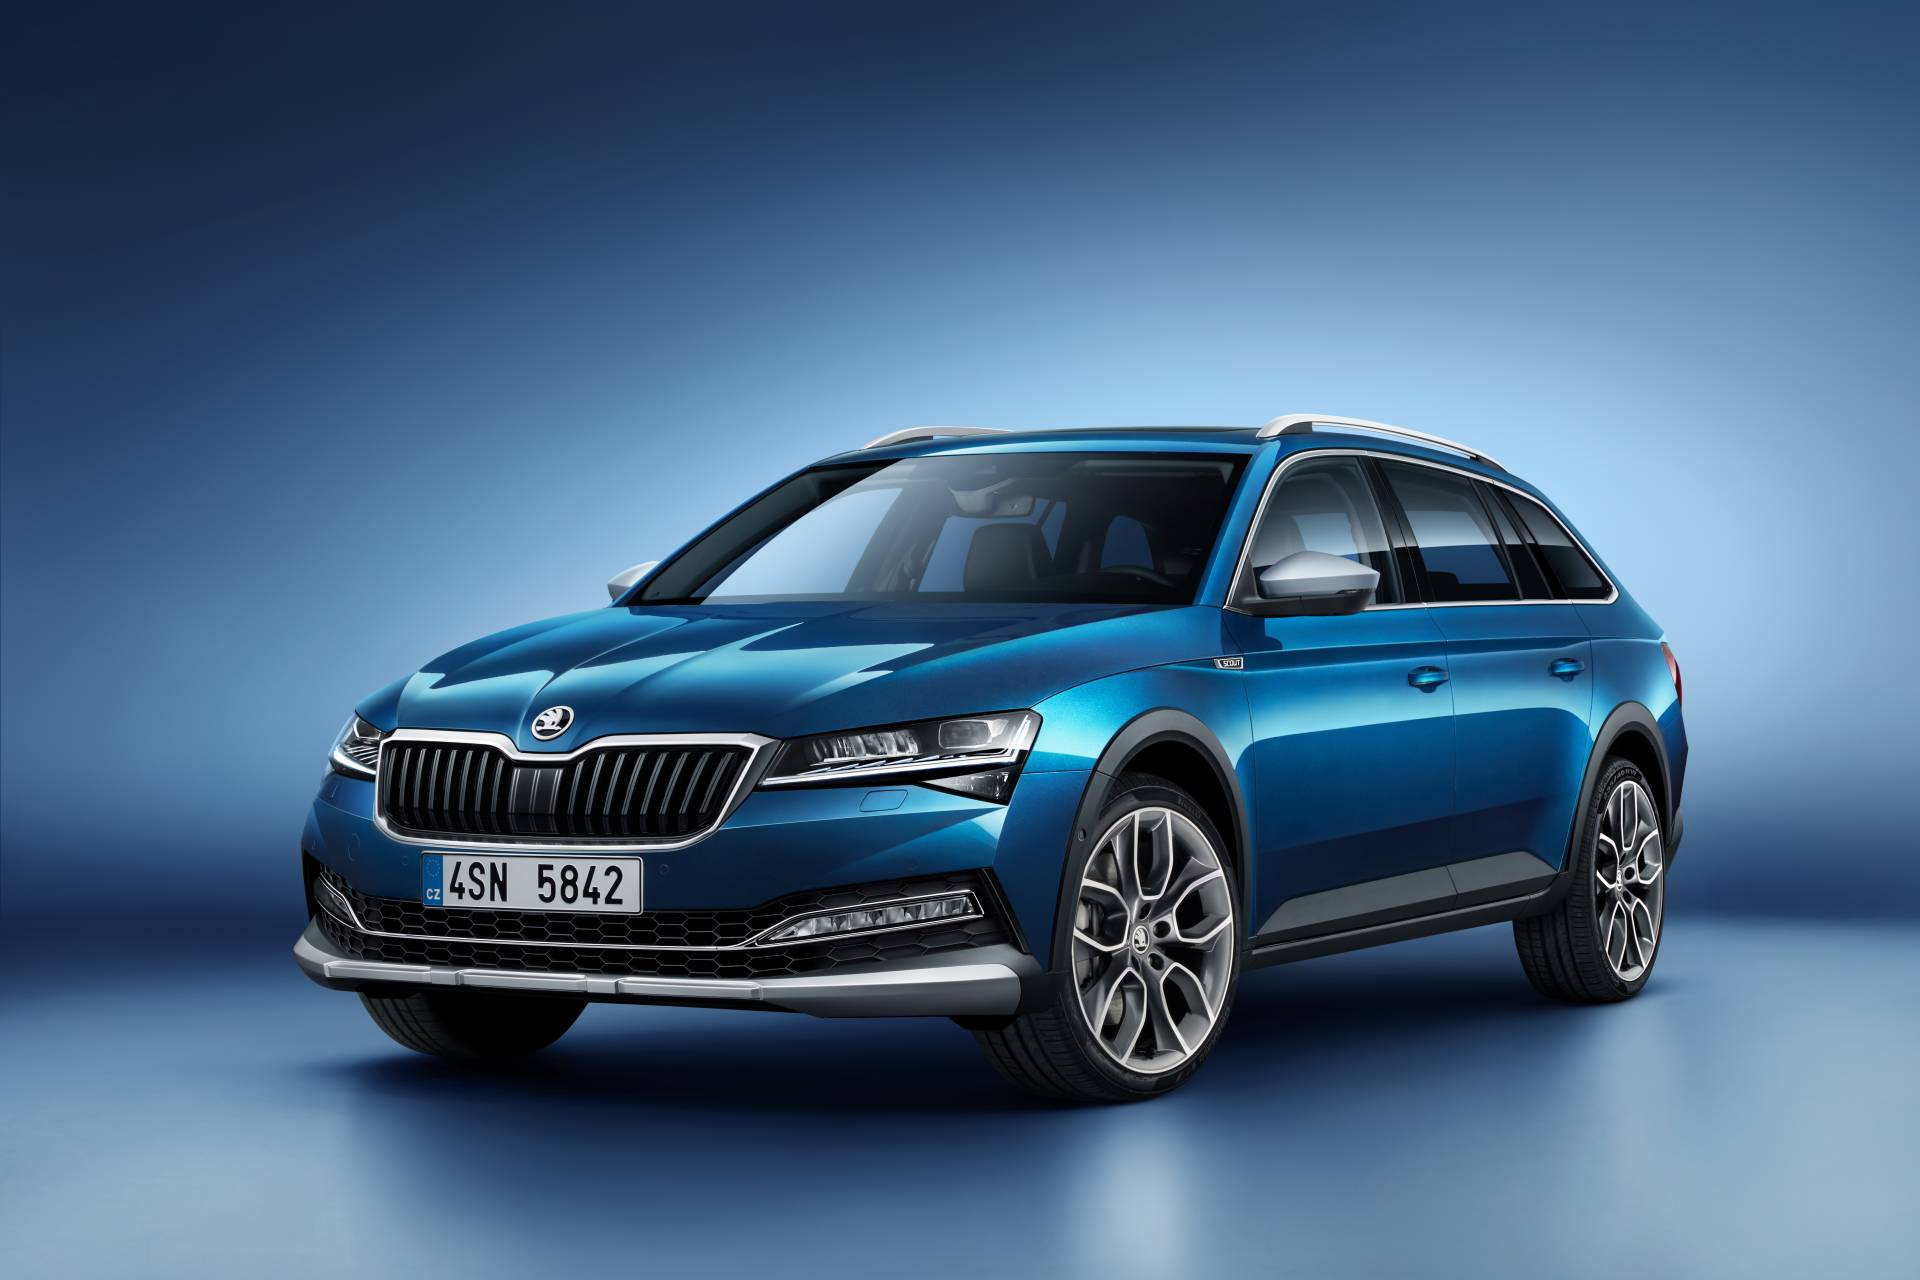 Bound Skoda Superb facelift revealed